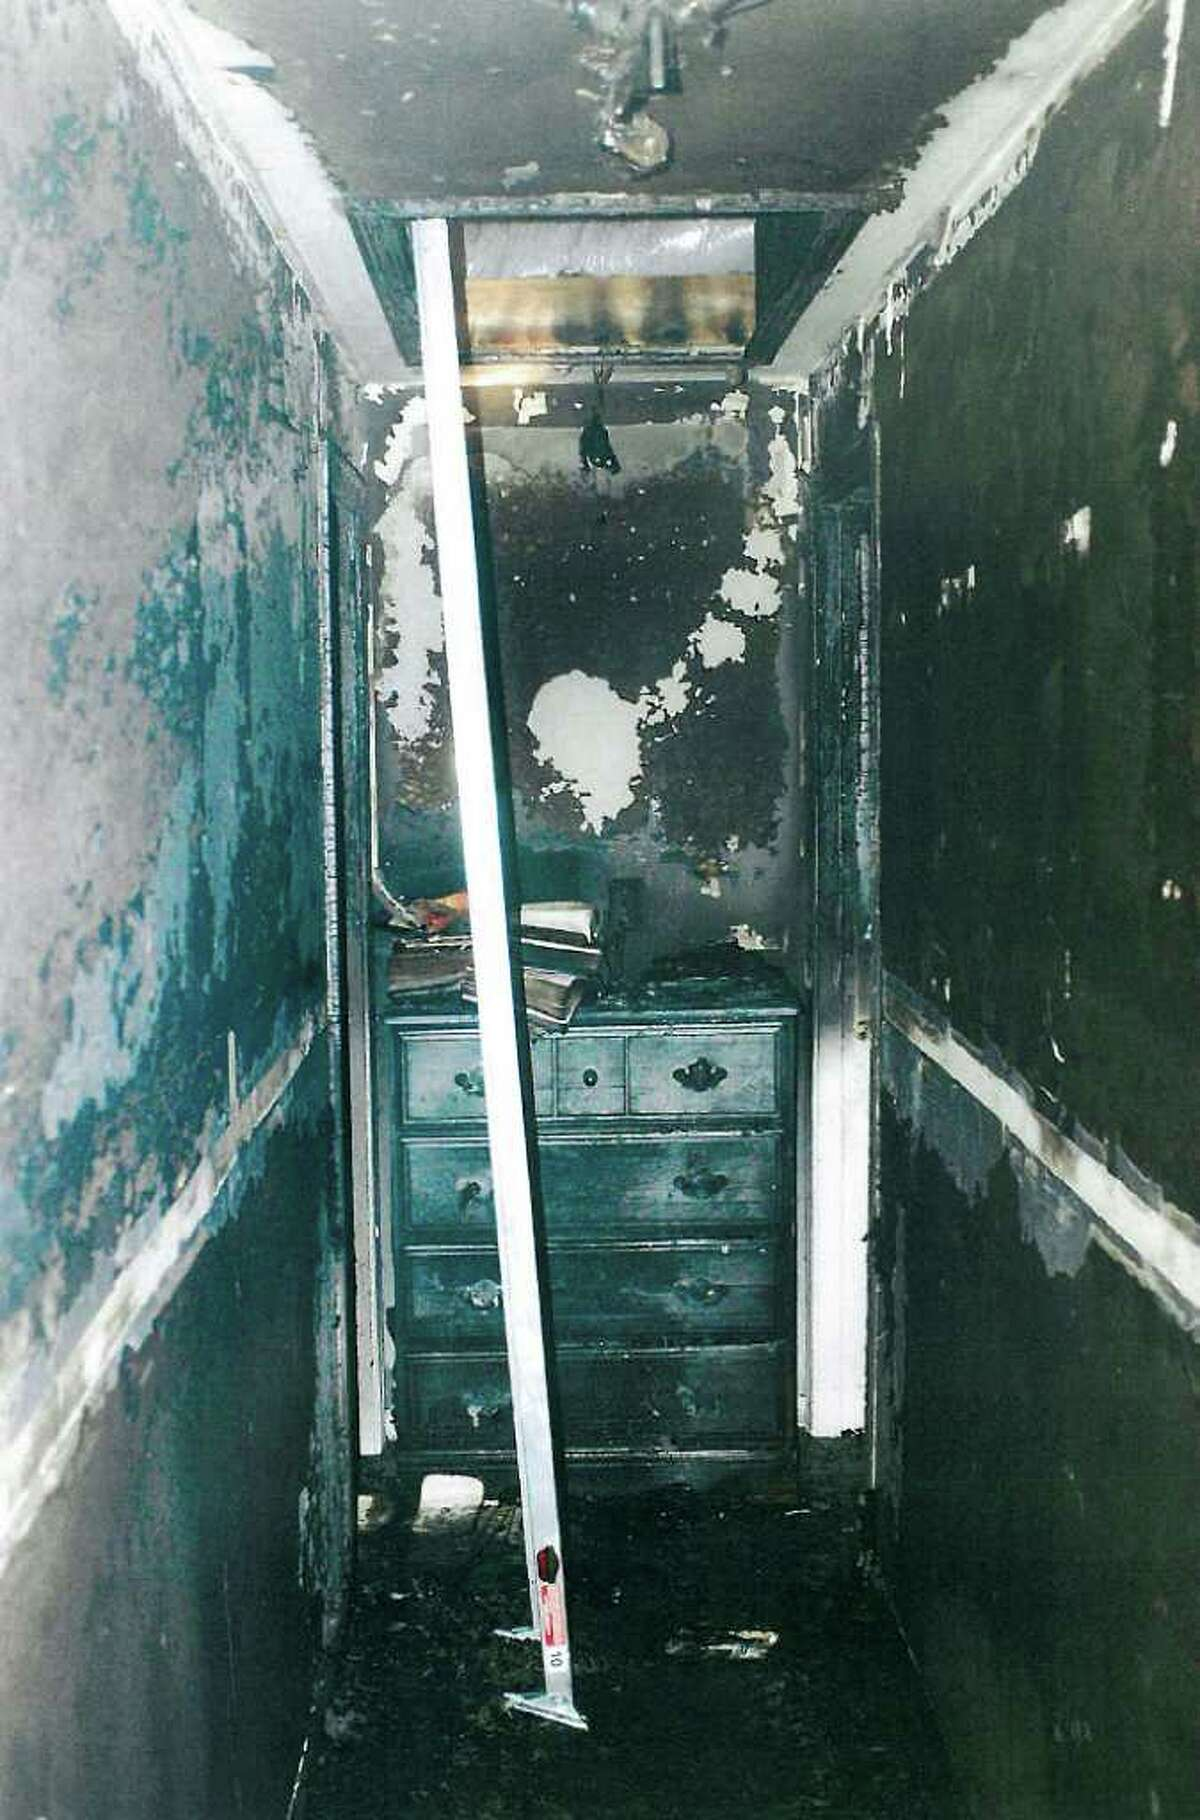 This July 2007 police photo released Friday, Sept. 24, 2010 by the Connecticut Judicial Branch as evidence in the Steven Hayes trial in New Haven, Conn., Superior Court, shows a charred upstairs hallway of the Petit's Cheshire, Conn., home, where three family members were killed during a home invasion July 23, 2007. (AP Photo/Connecticut Judicial Branch)